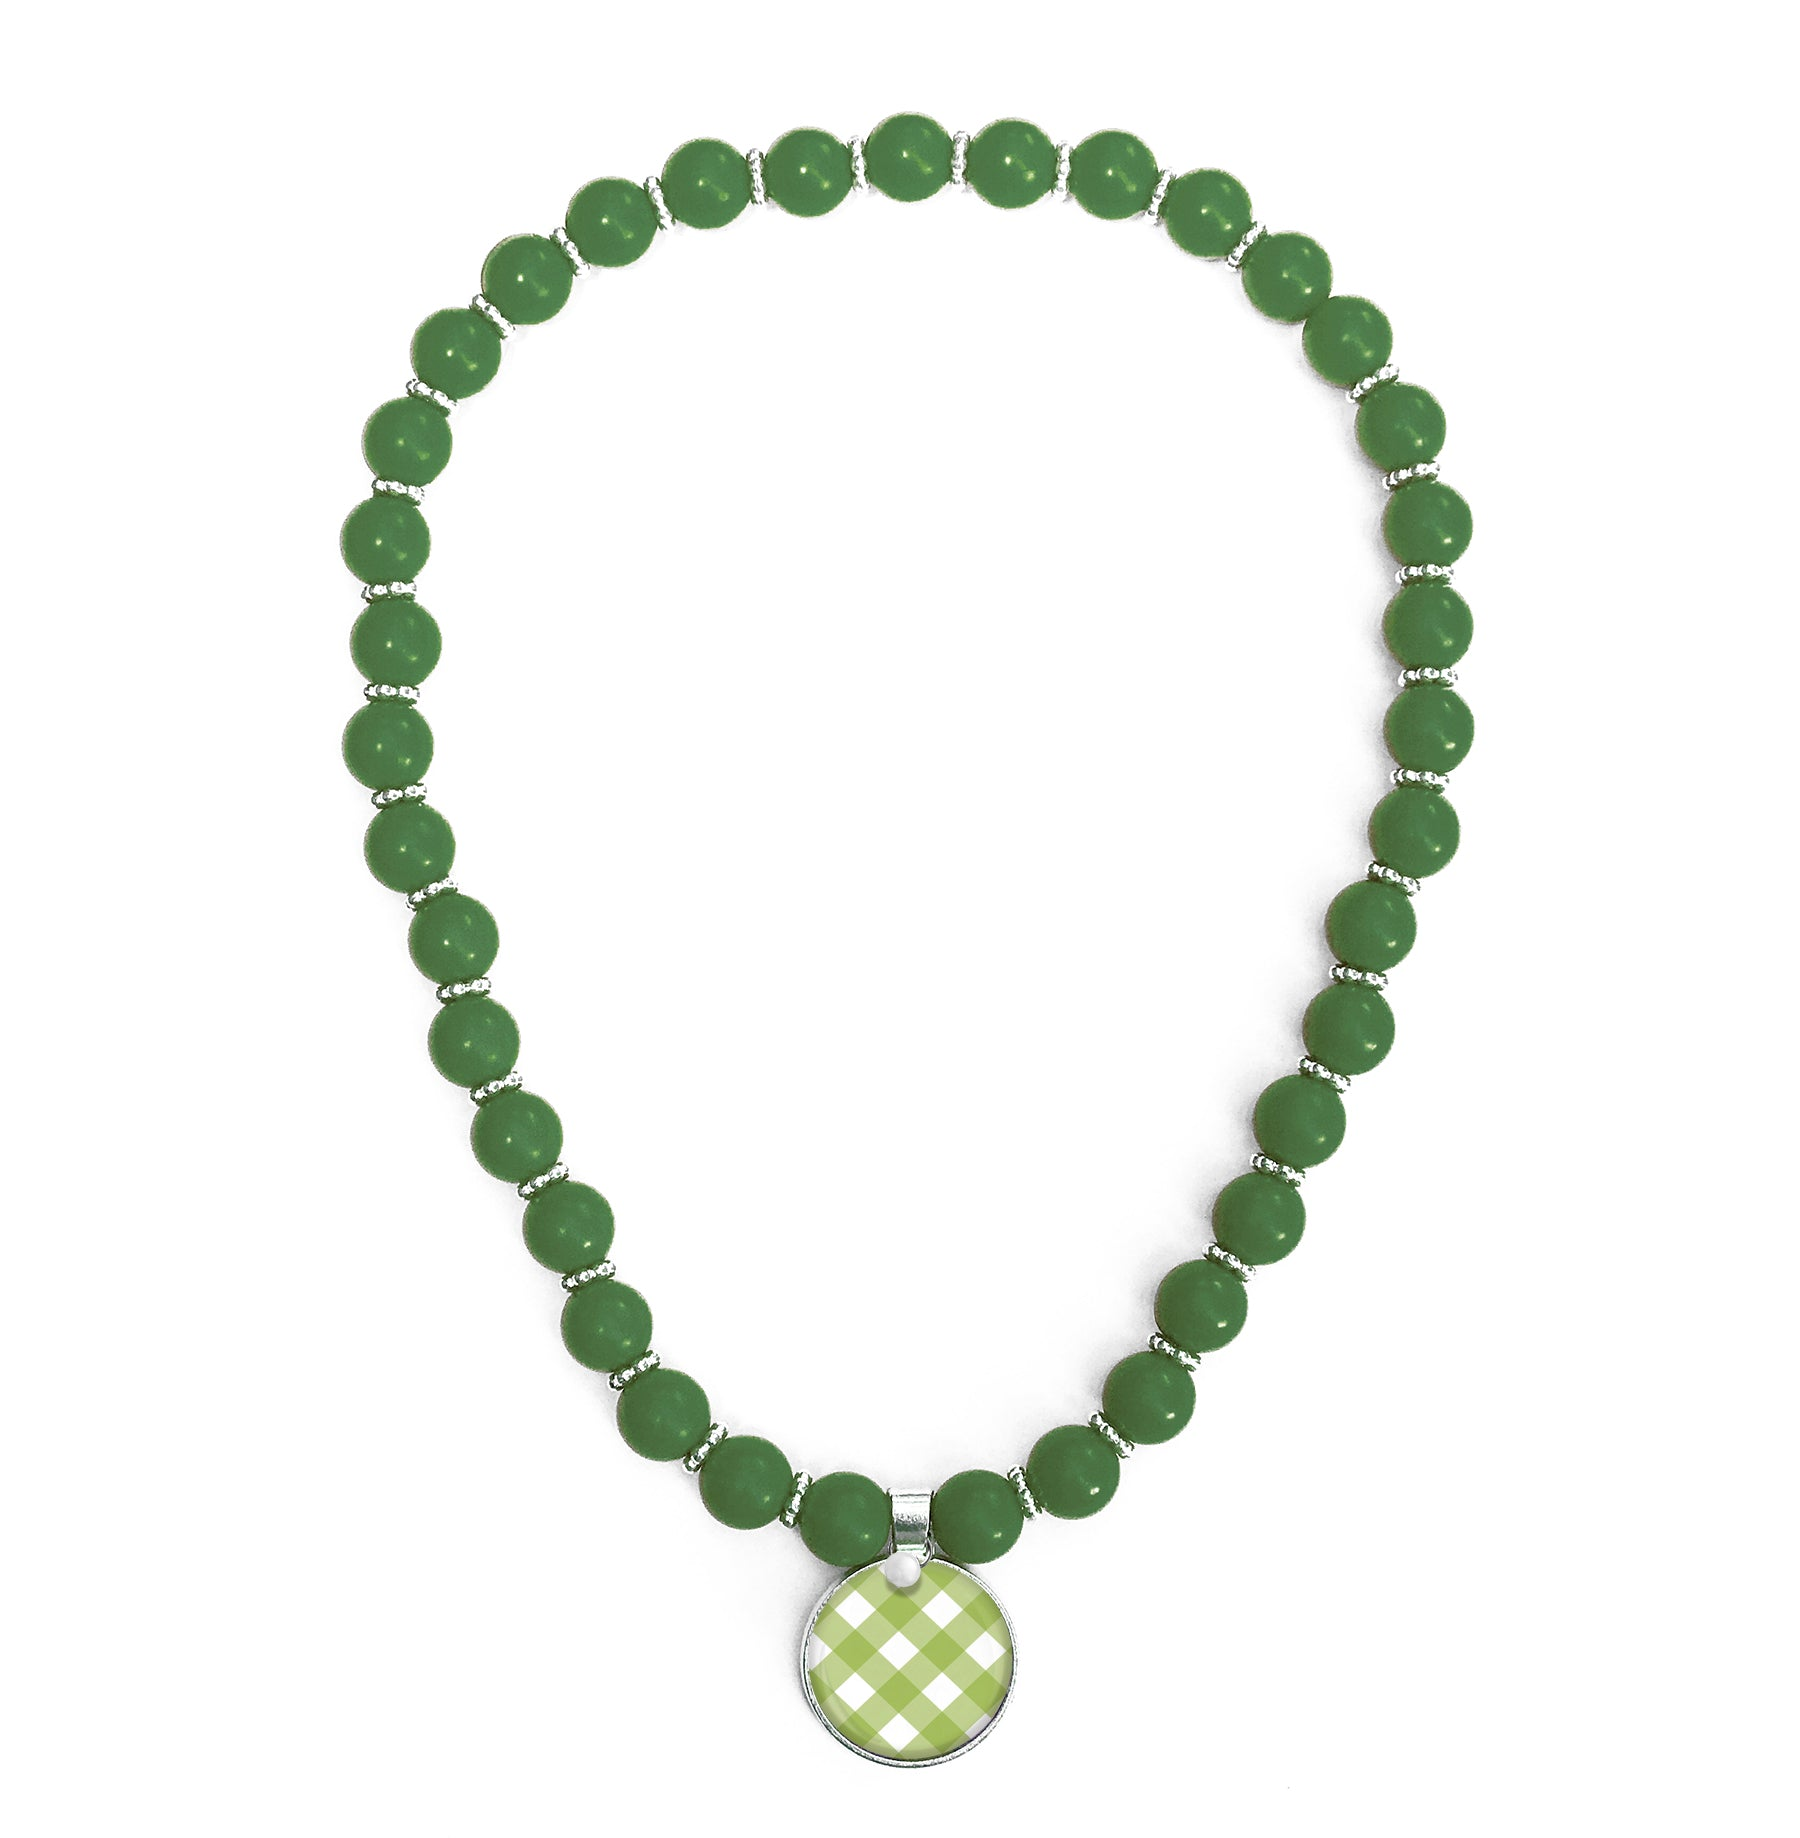 Gingham Green Beaded Necklace